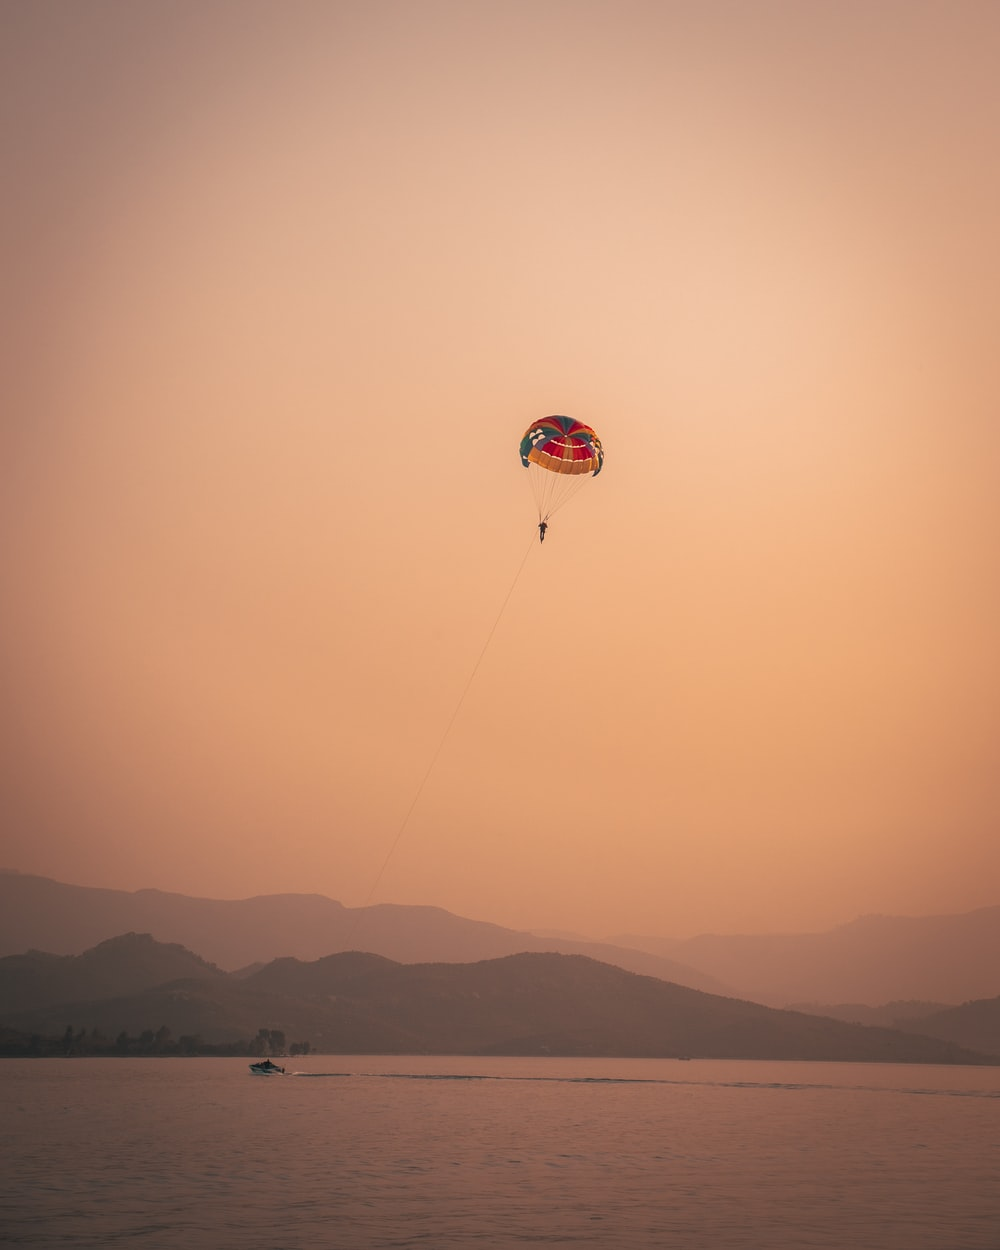 red and white parachute over the mountains during sunset